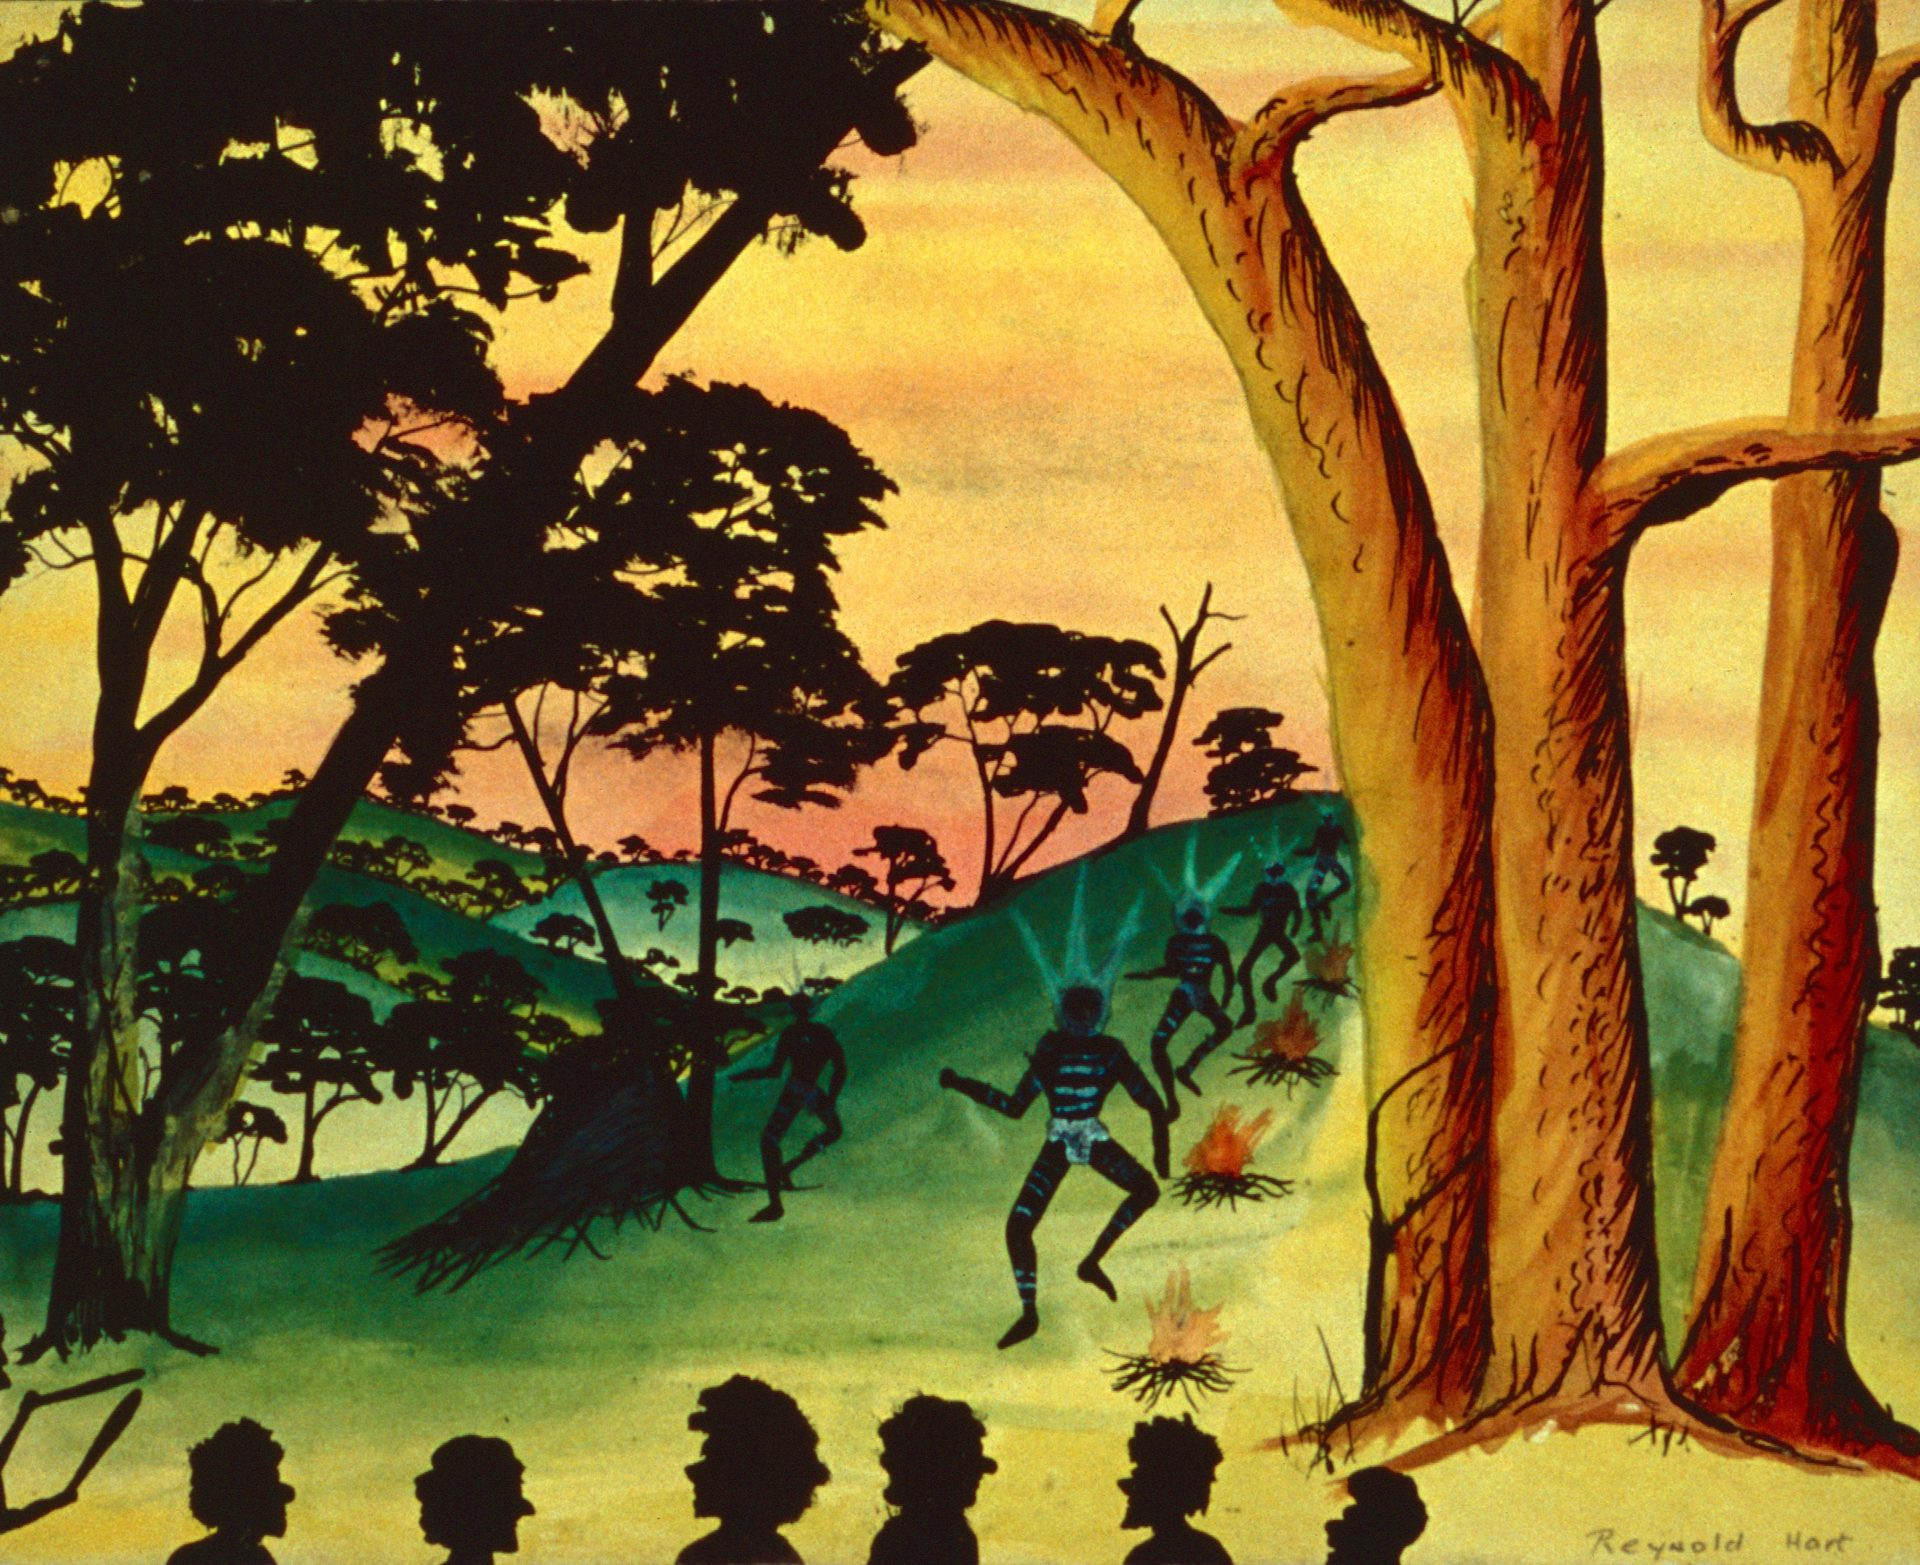 Imagined corroboree by Reynold Hart, watercolour and ink on paper, 25 x 30cm, c.1948. Stan, Melvie and Gael Phillips Collection, 1947 - 65, Berndt Museum of Anthropology. [WU7255]